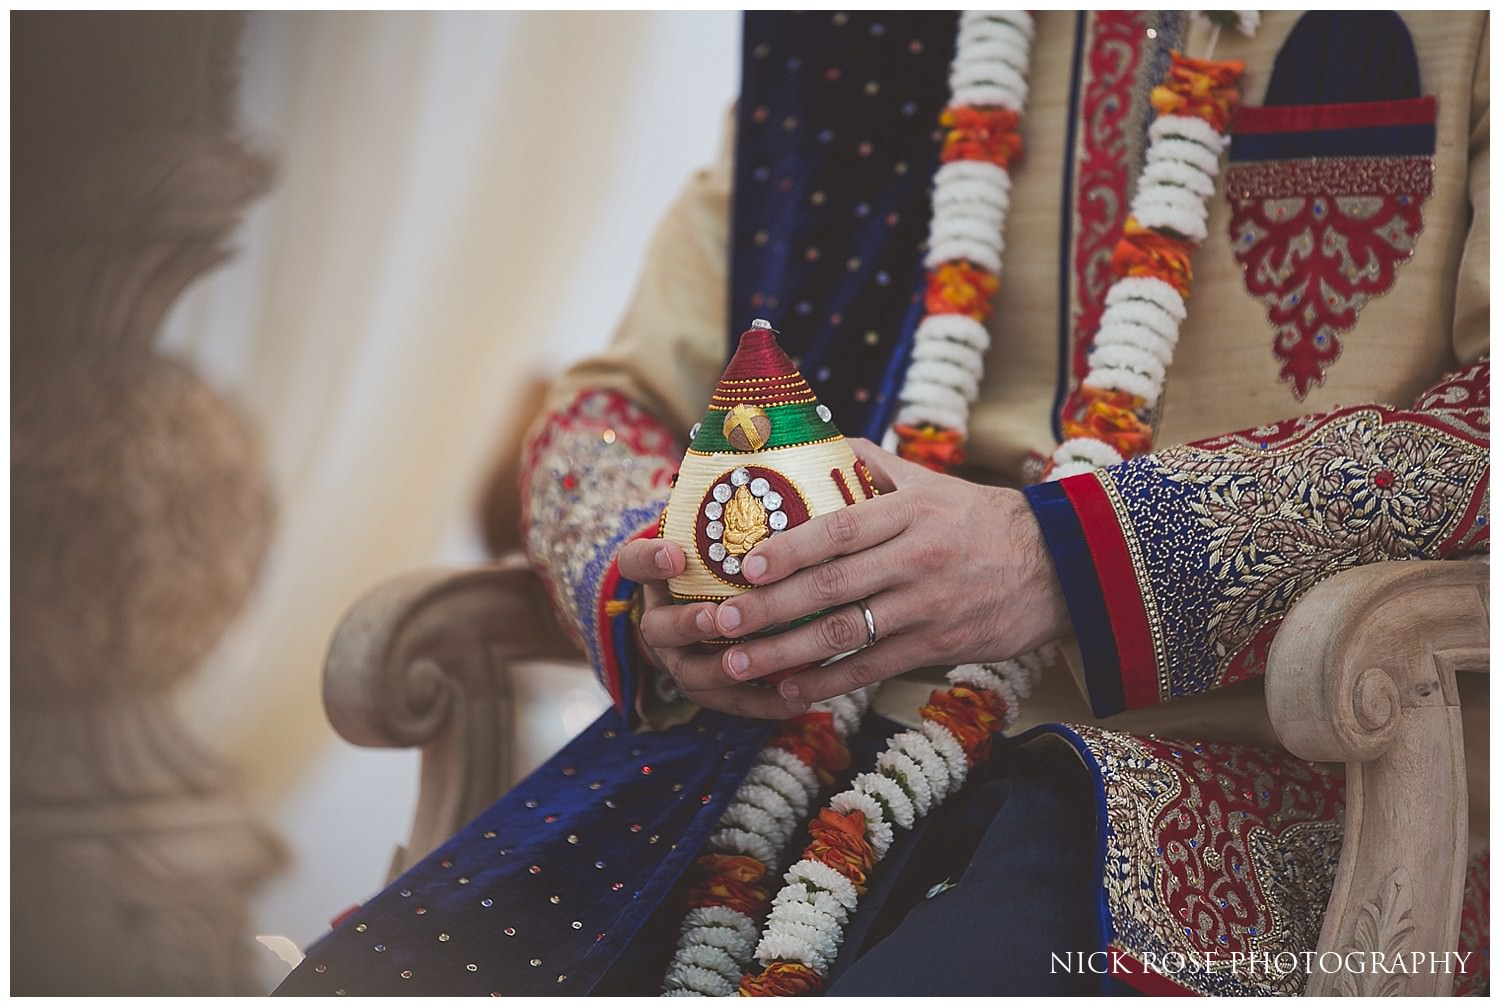 Close up photograph of groom's hands during a Hindu ceremony at East Wintergarden in Canary Wharf